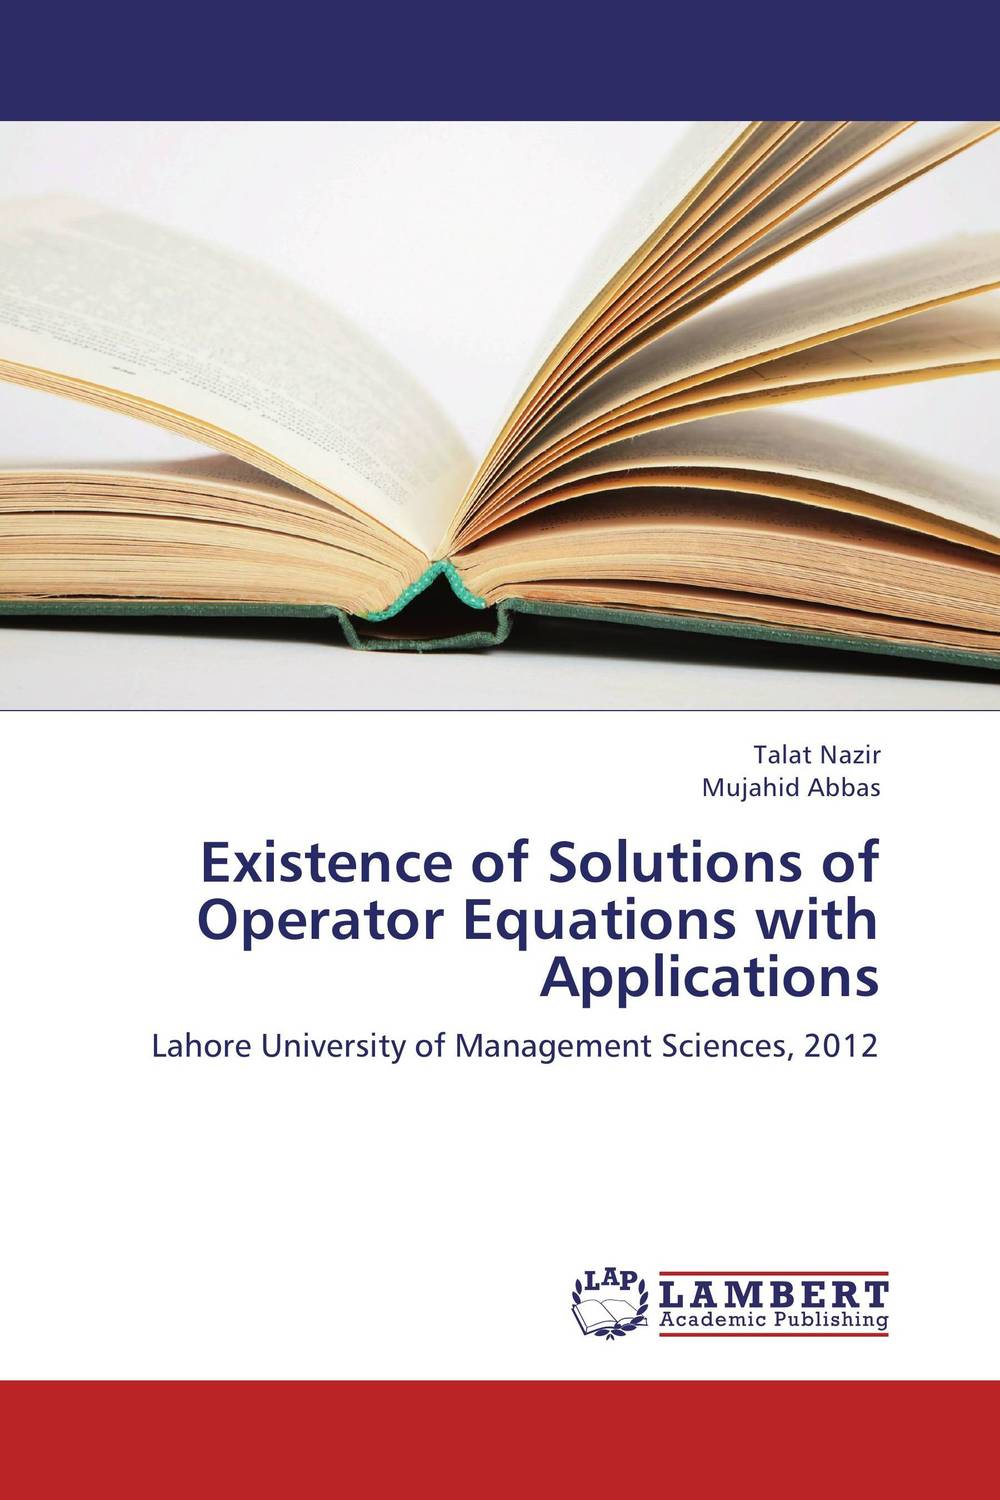 Existence of Solutions of Operator Equations with Applications